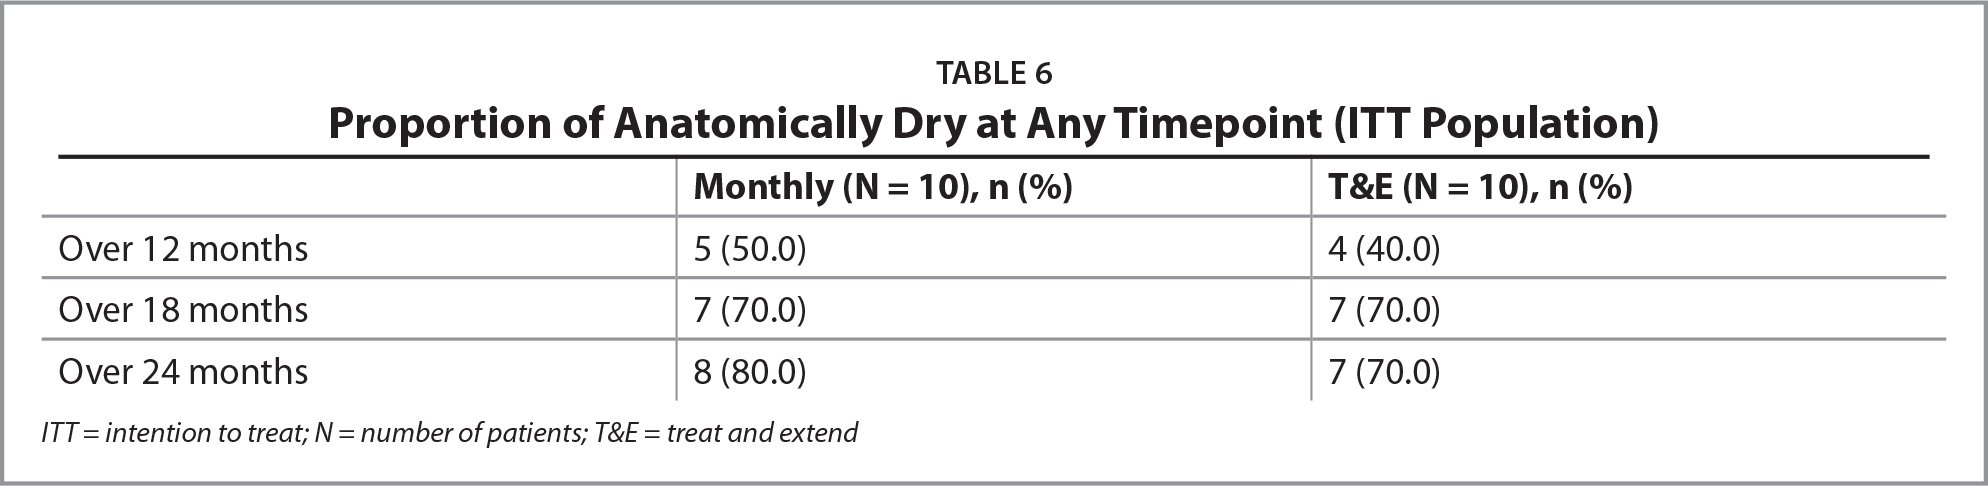 Proportion of Anatomically Dry at Any Timepoint (ITT Population)